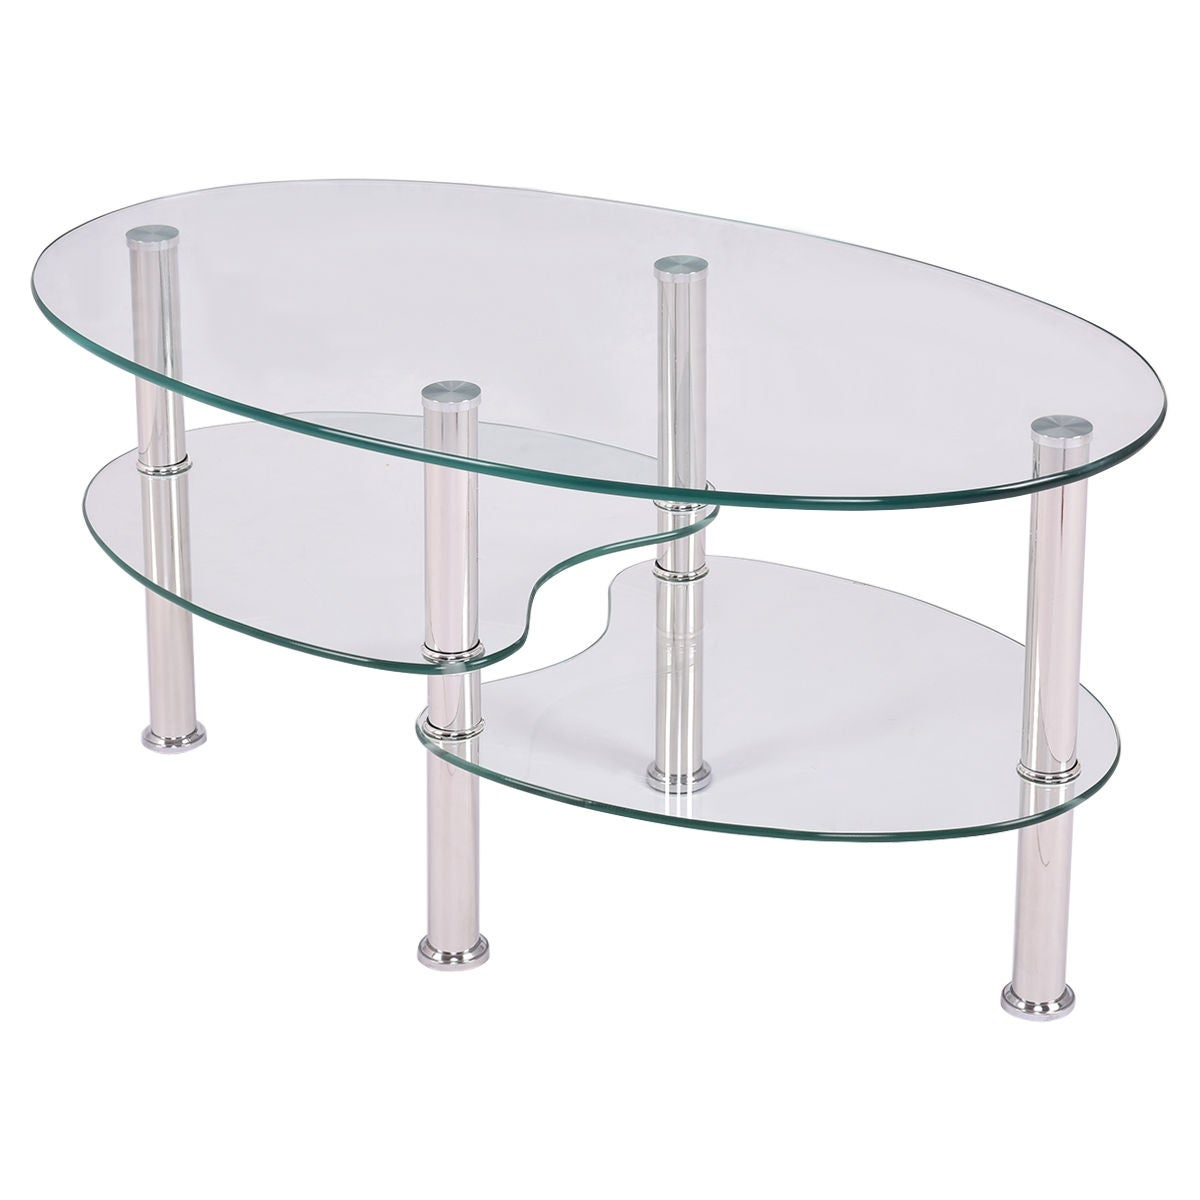 Charming Shop Costway Tempered Glass Oval Side Coffee Table Shelf Chrome Base Living  Room Clear   Free Shipping Today   Overstock.com   17800788